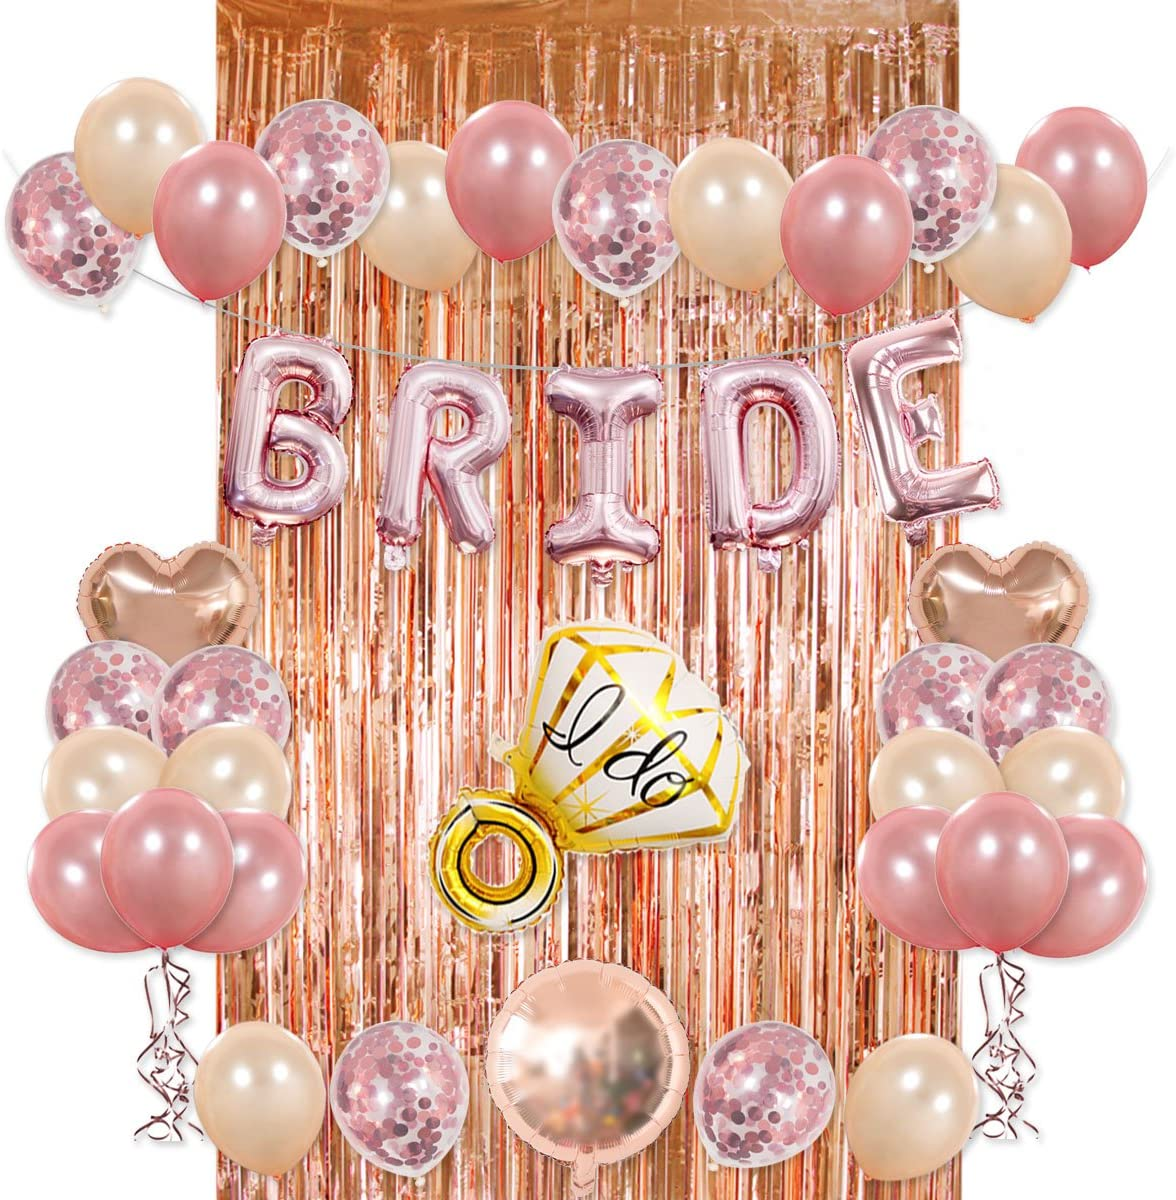 Hello Birthday Party BRIDE Rose Gold Balloons 34 Letter Ballloons Garland Balloons Wedding Floating Helium Air Bride To Be Bridal